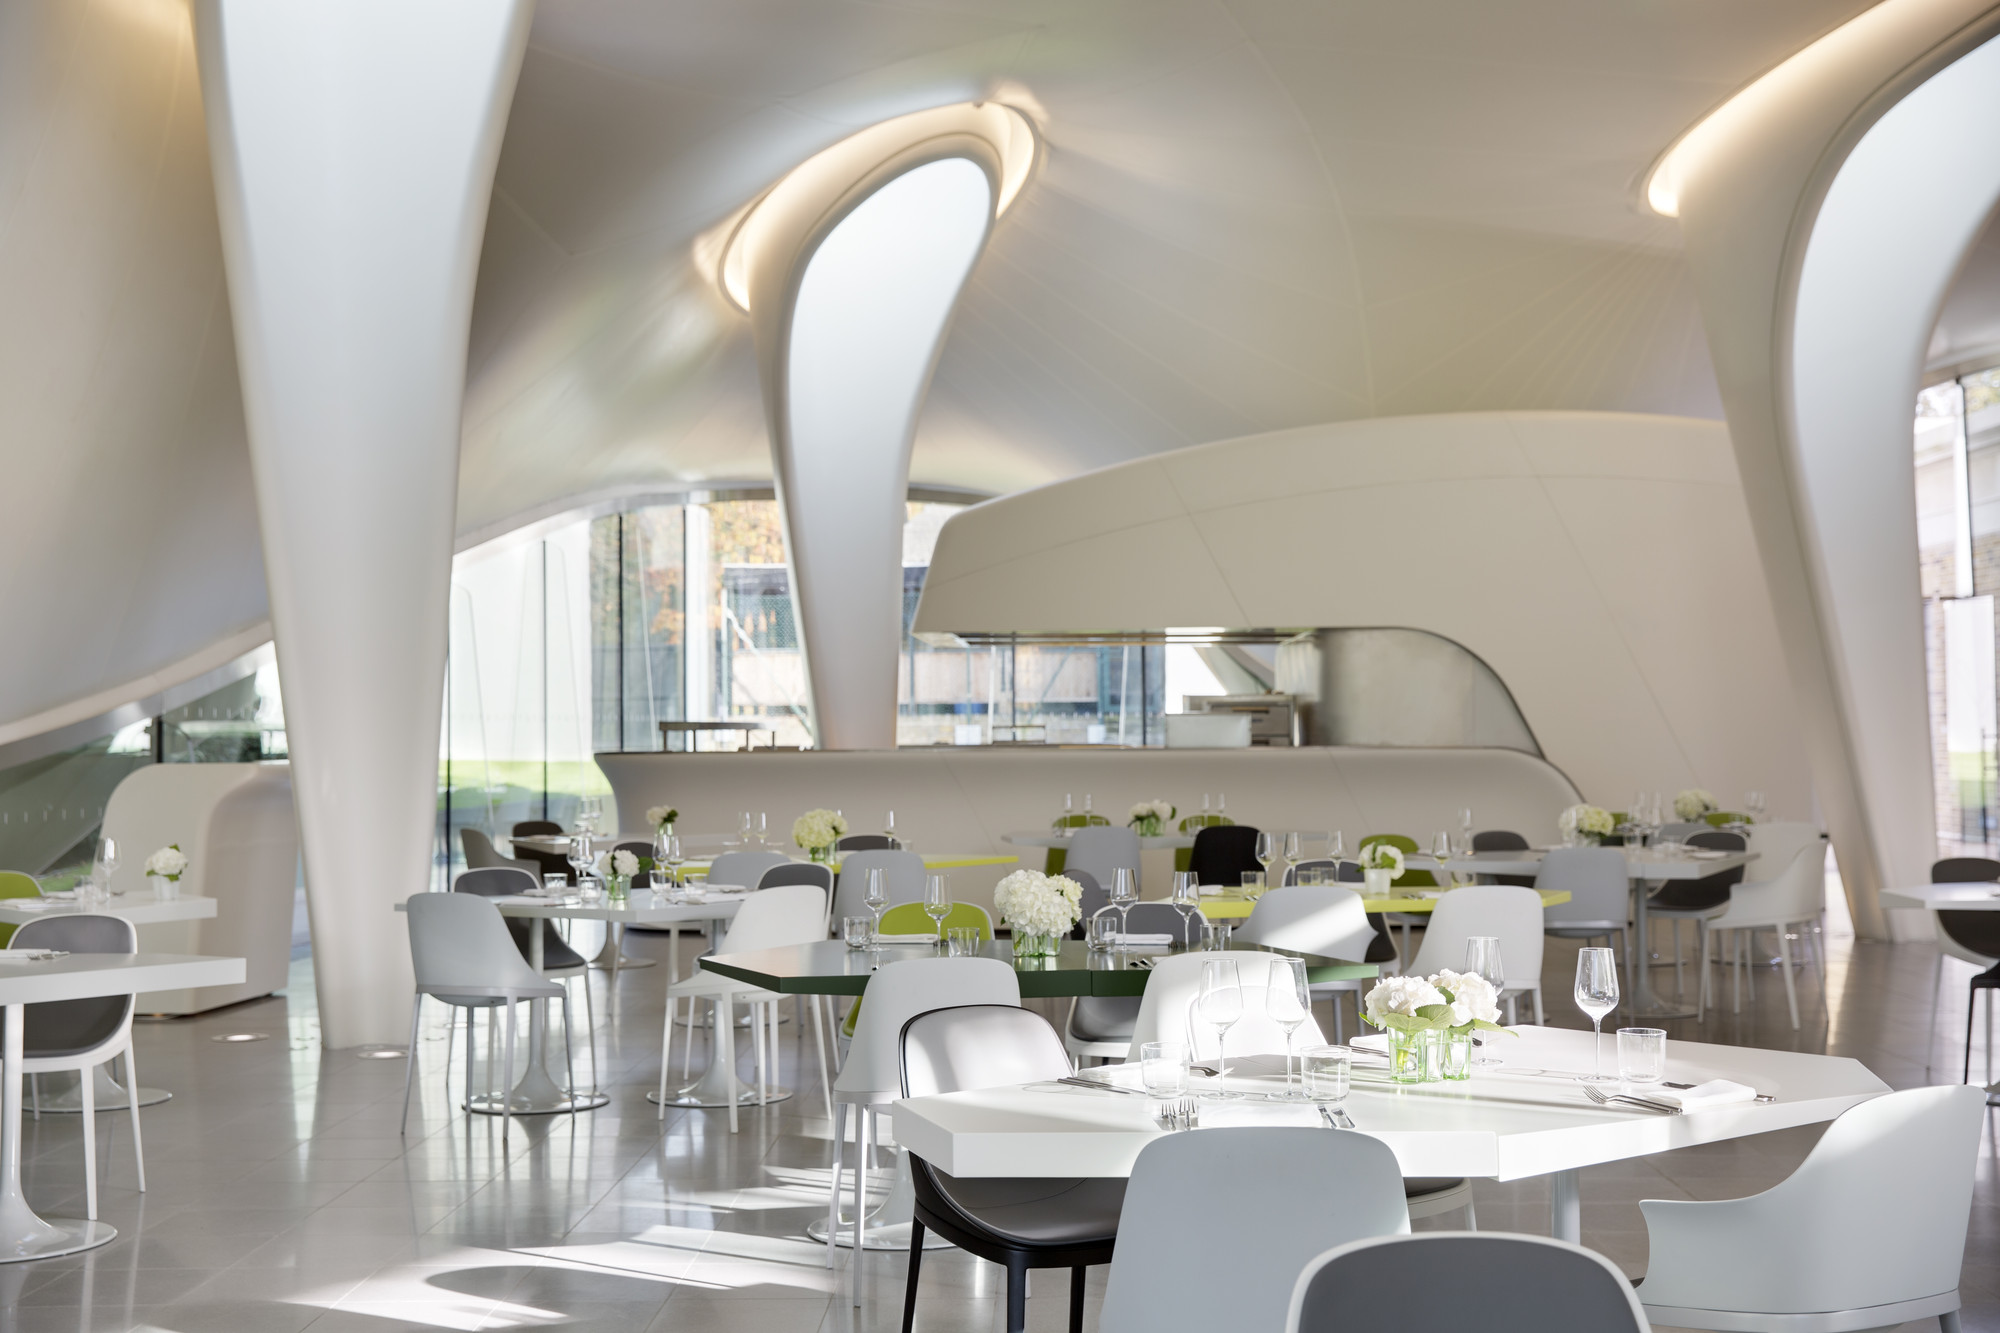 Restaurant Bar In Another Space The Magazine London Zaha Hadid Architects